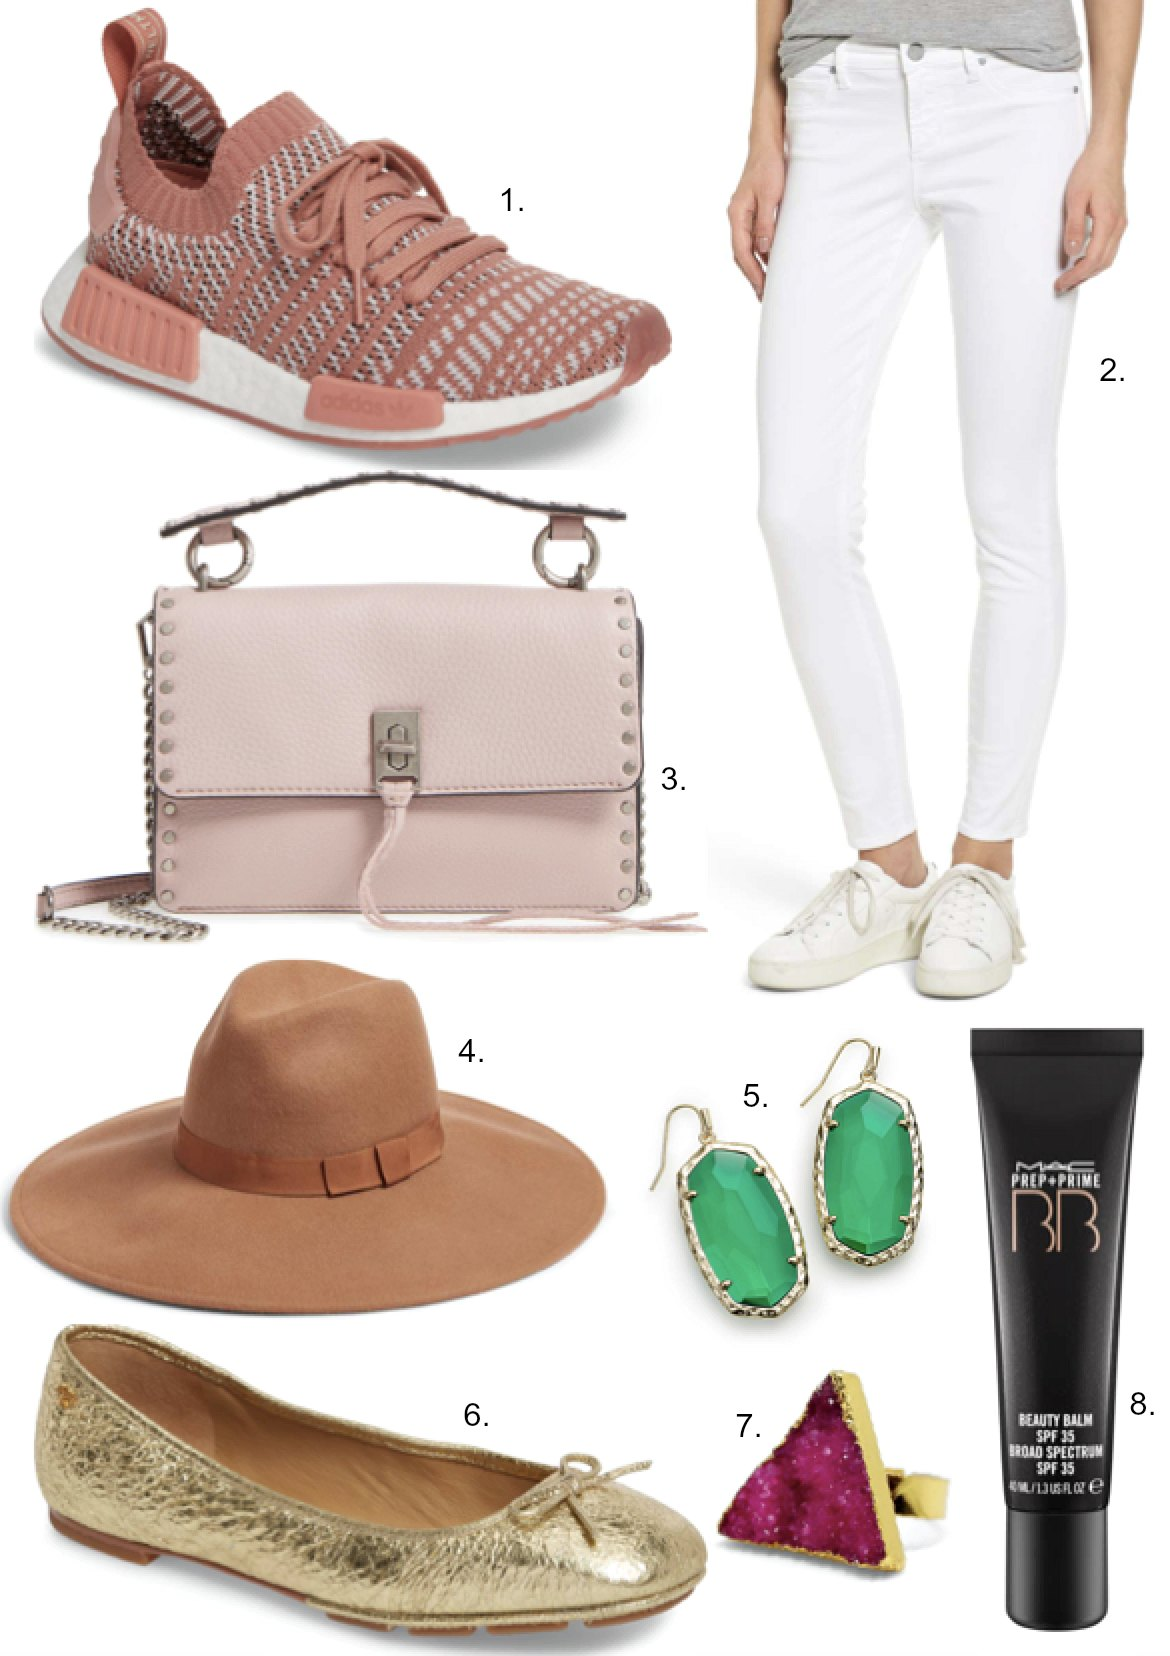 best sale finds adidas nmd sale kendra scott mac makeup tory burch shoes sale nordstrom sale